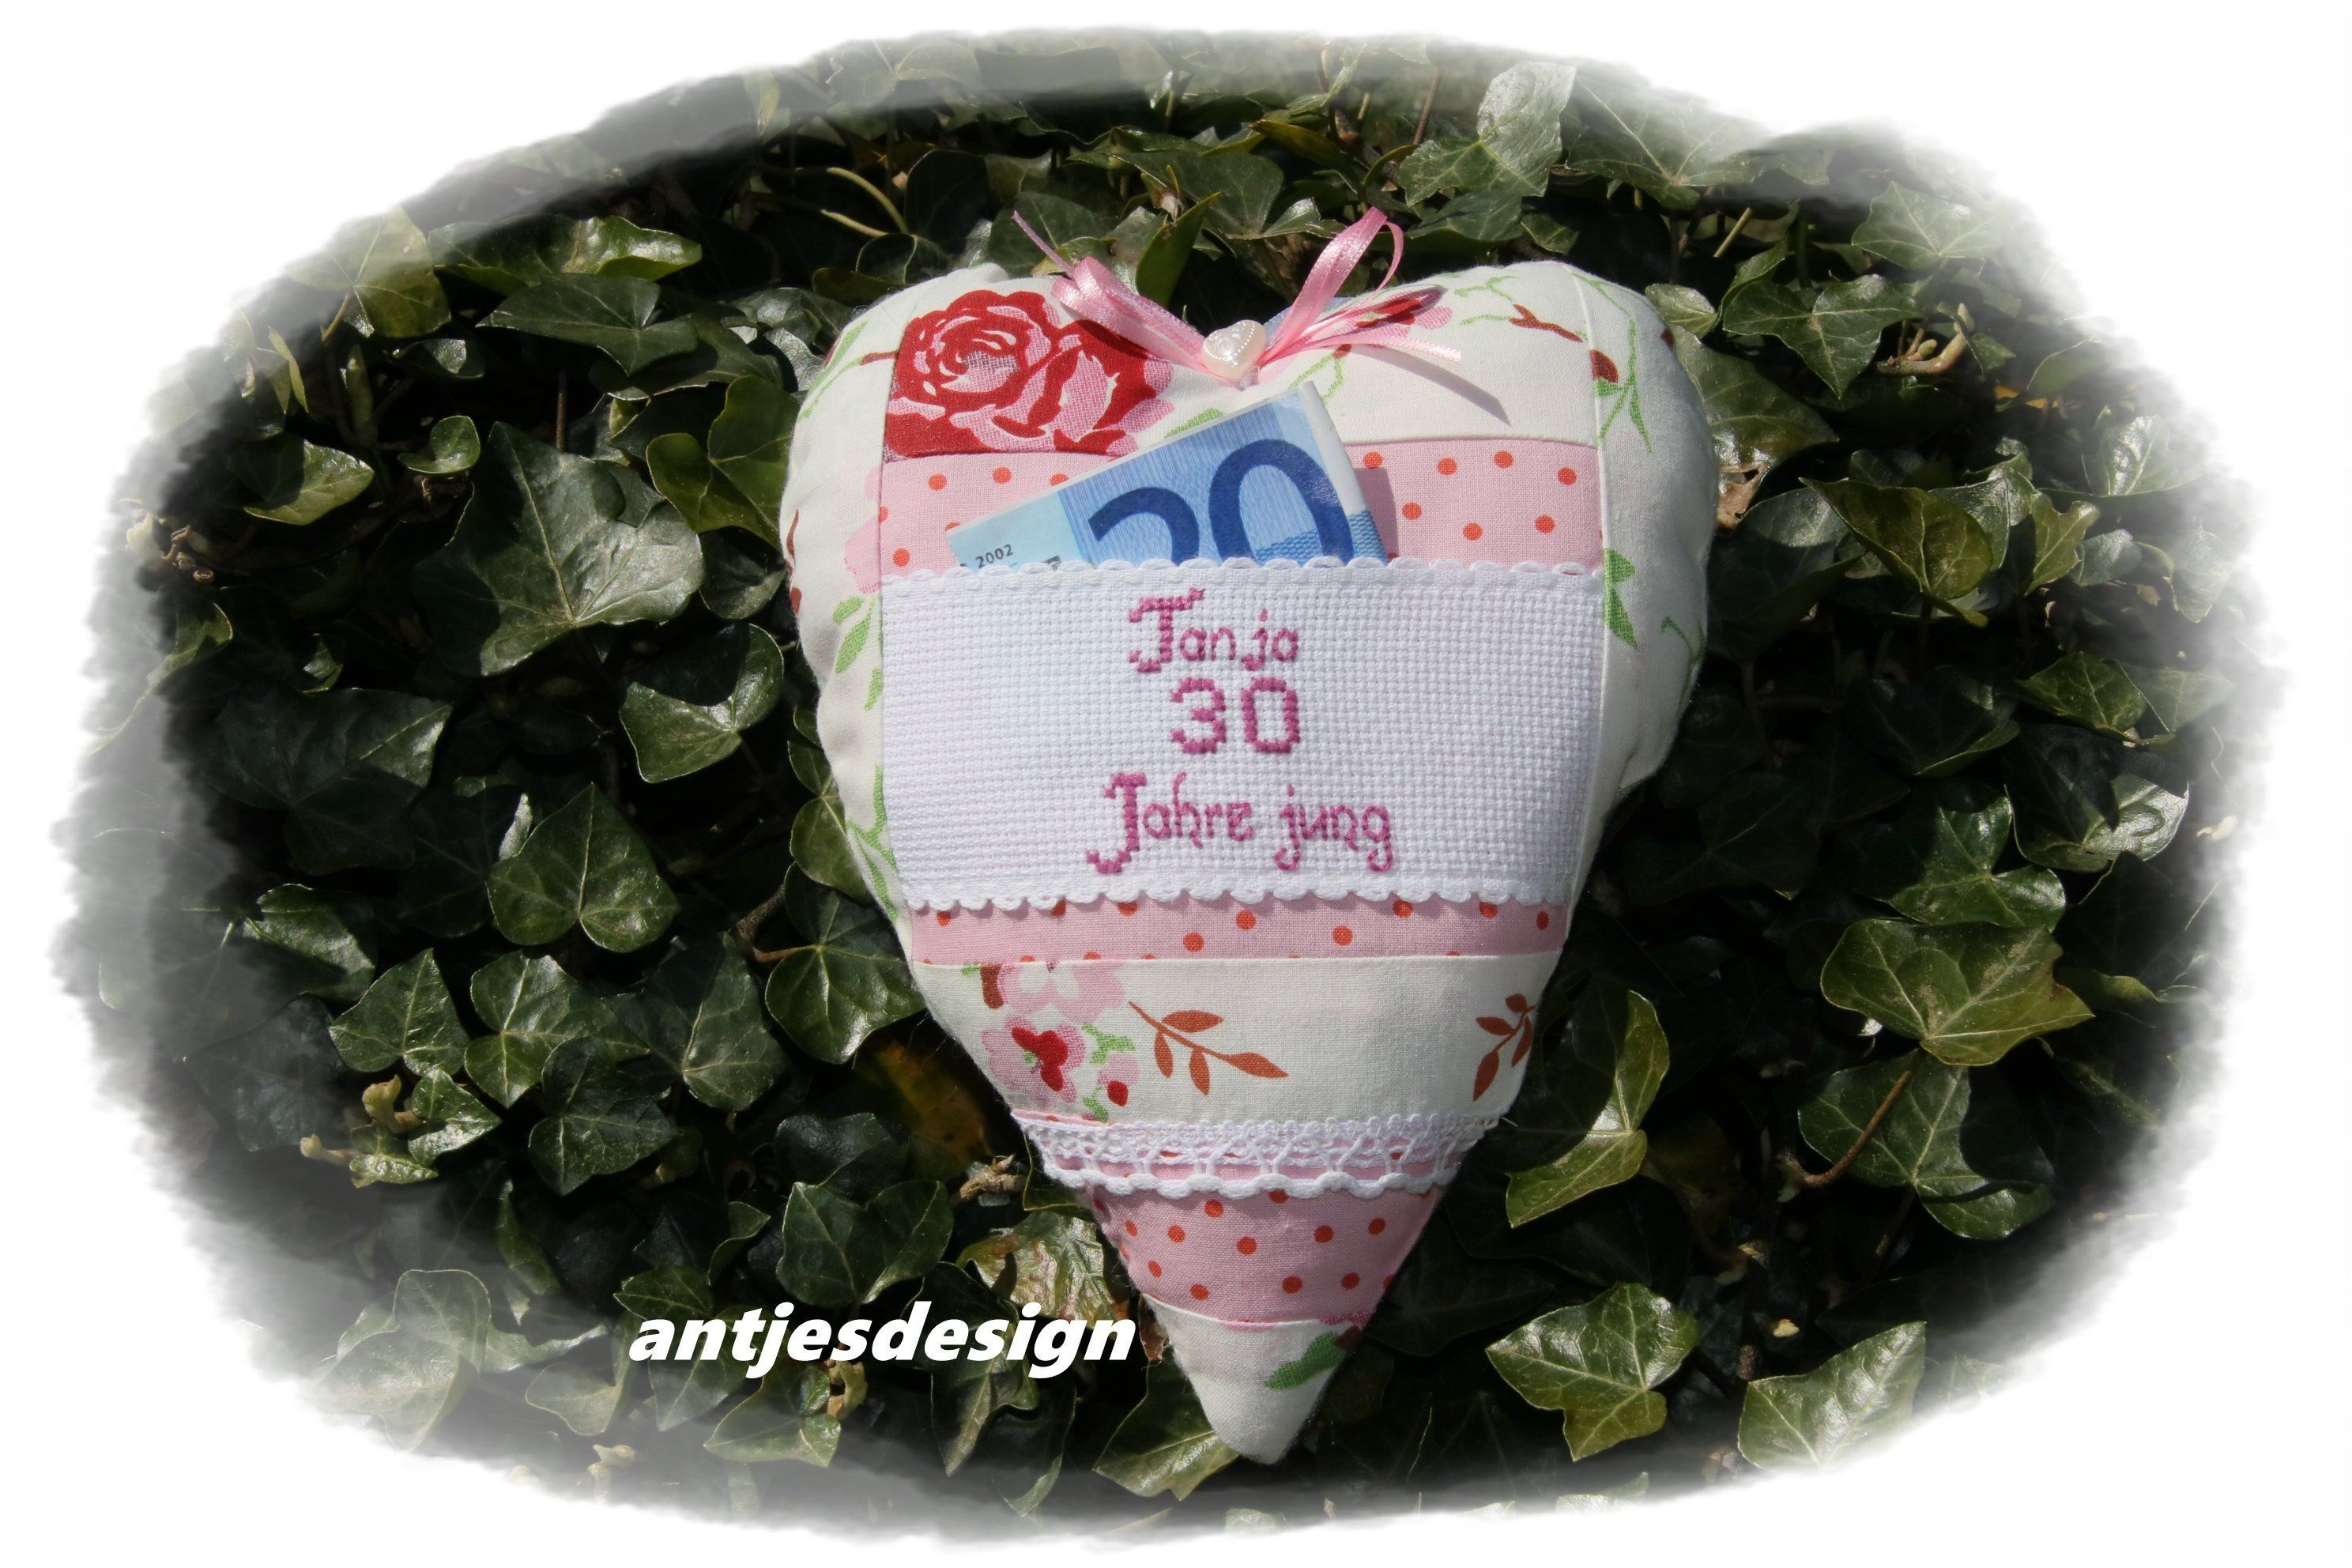 Funny Gift 30th Birthday Cash Gift Packaging Rose Fabric Rosali